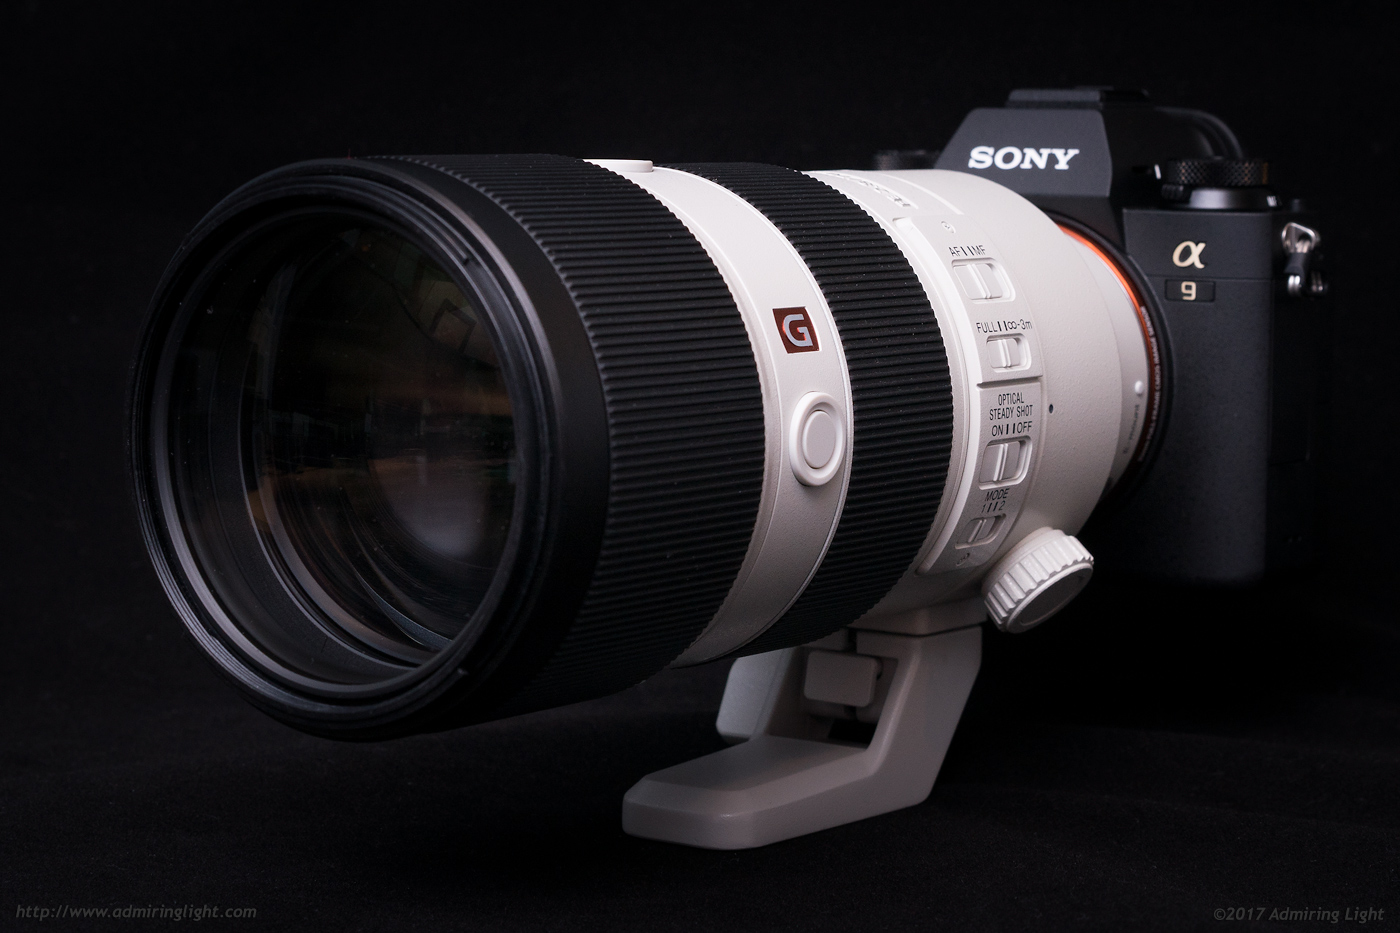 The Sony FE 70-200mm f/2.8 GM on the Sony A9